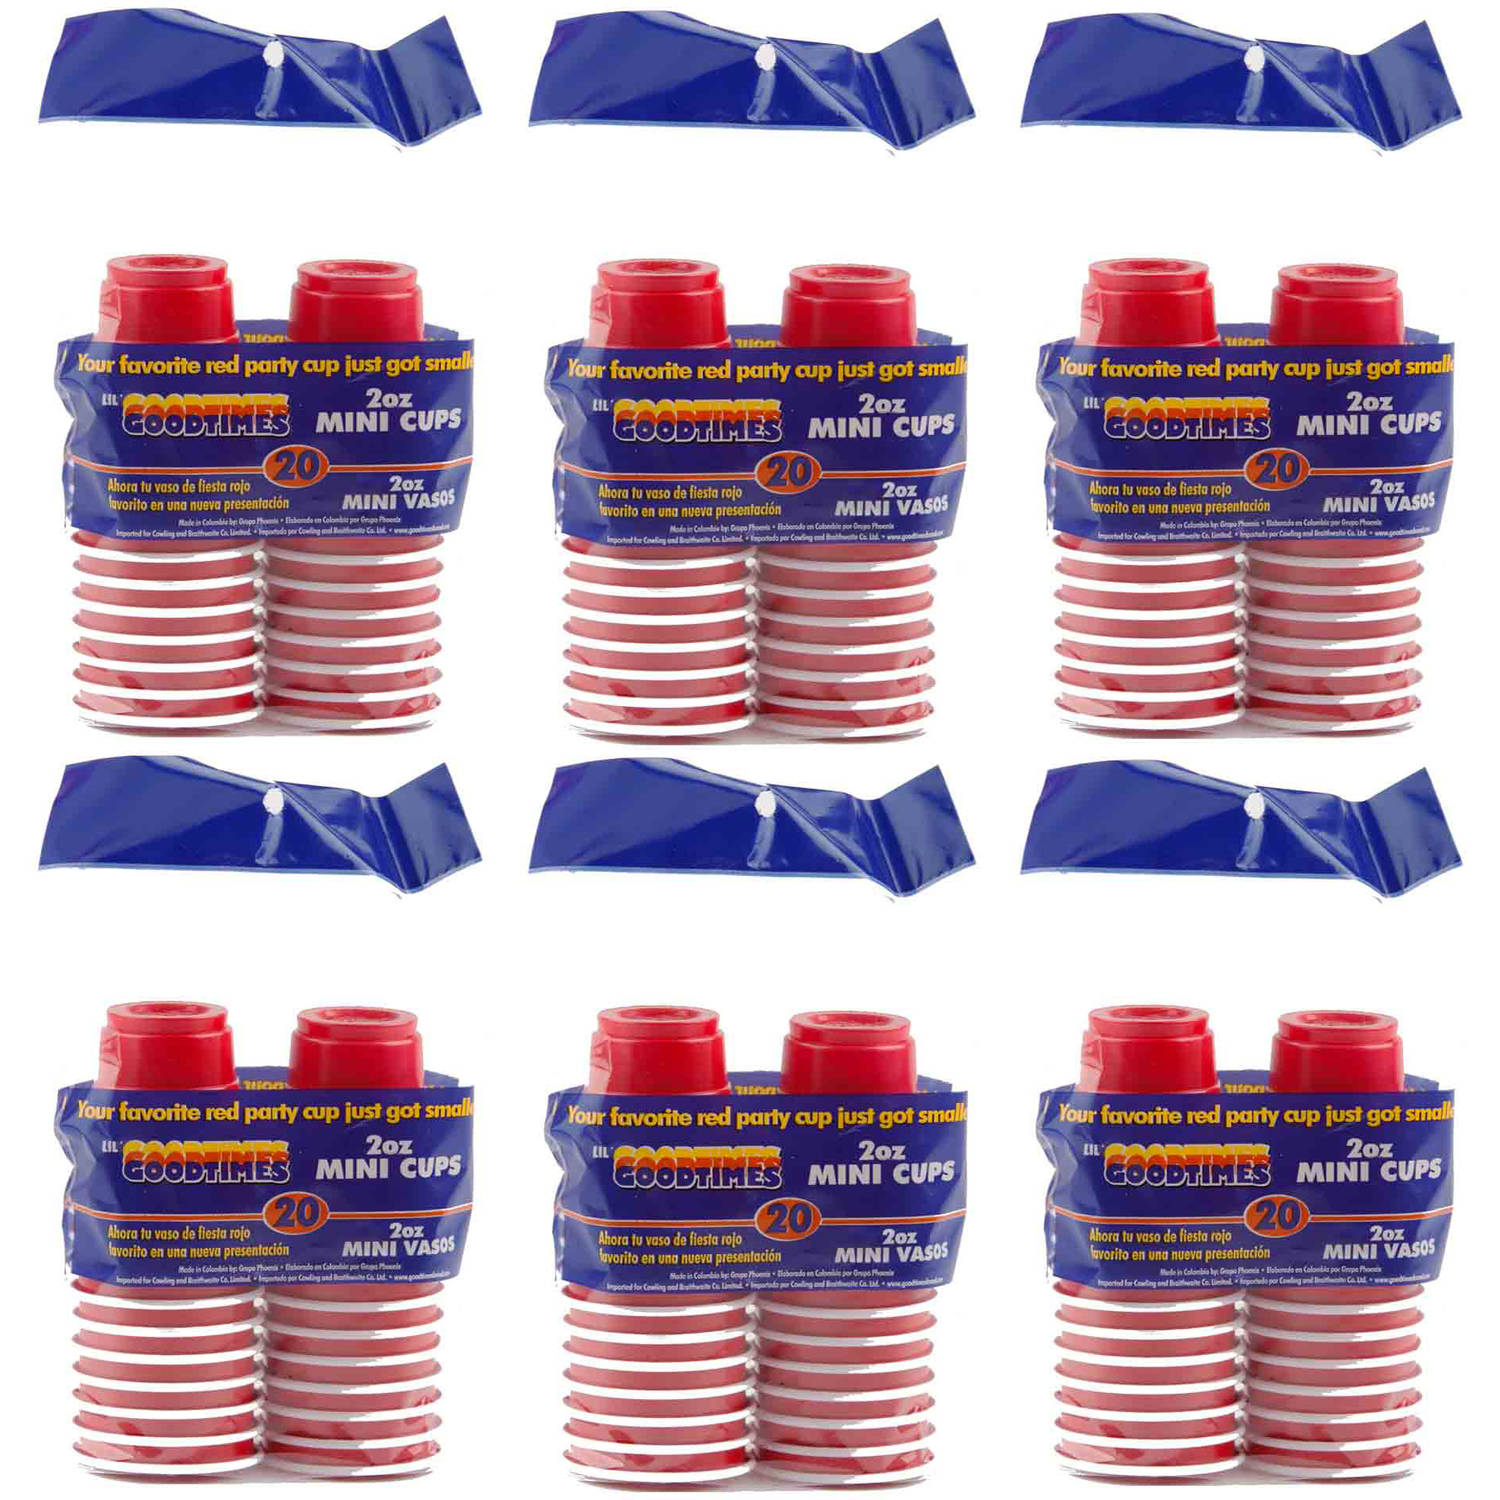 Goodtimes 2 oz Mini Red Party Cup, 120-Count GTB00355